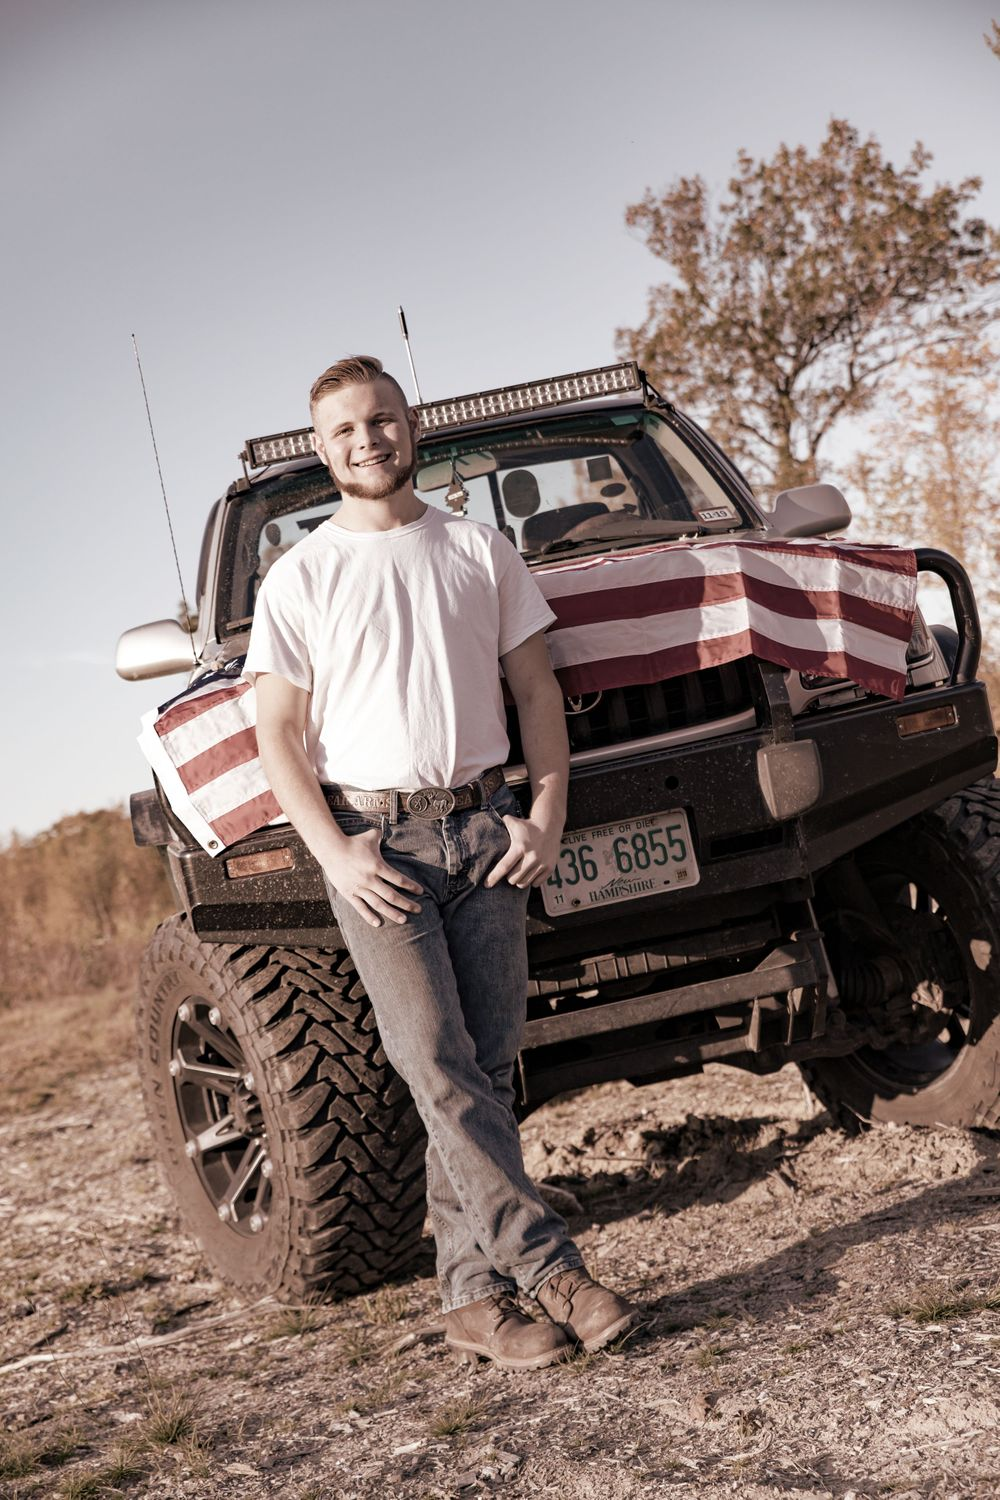 High school boy with his american flag covered truck whit tee jeans  Barnstead NH.